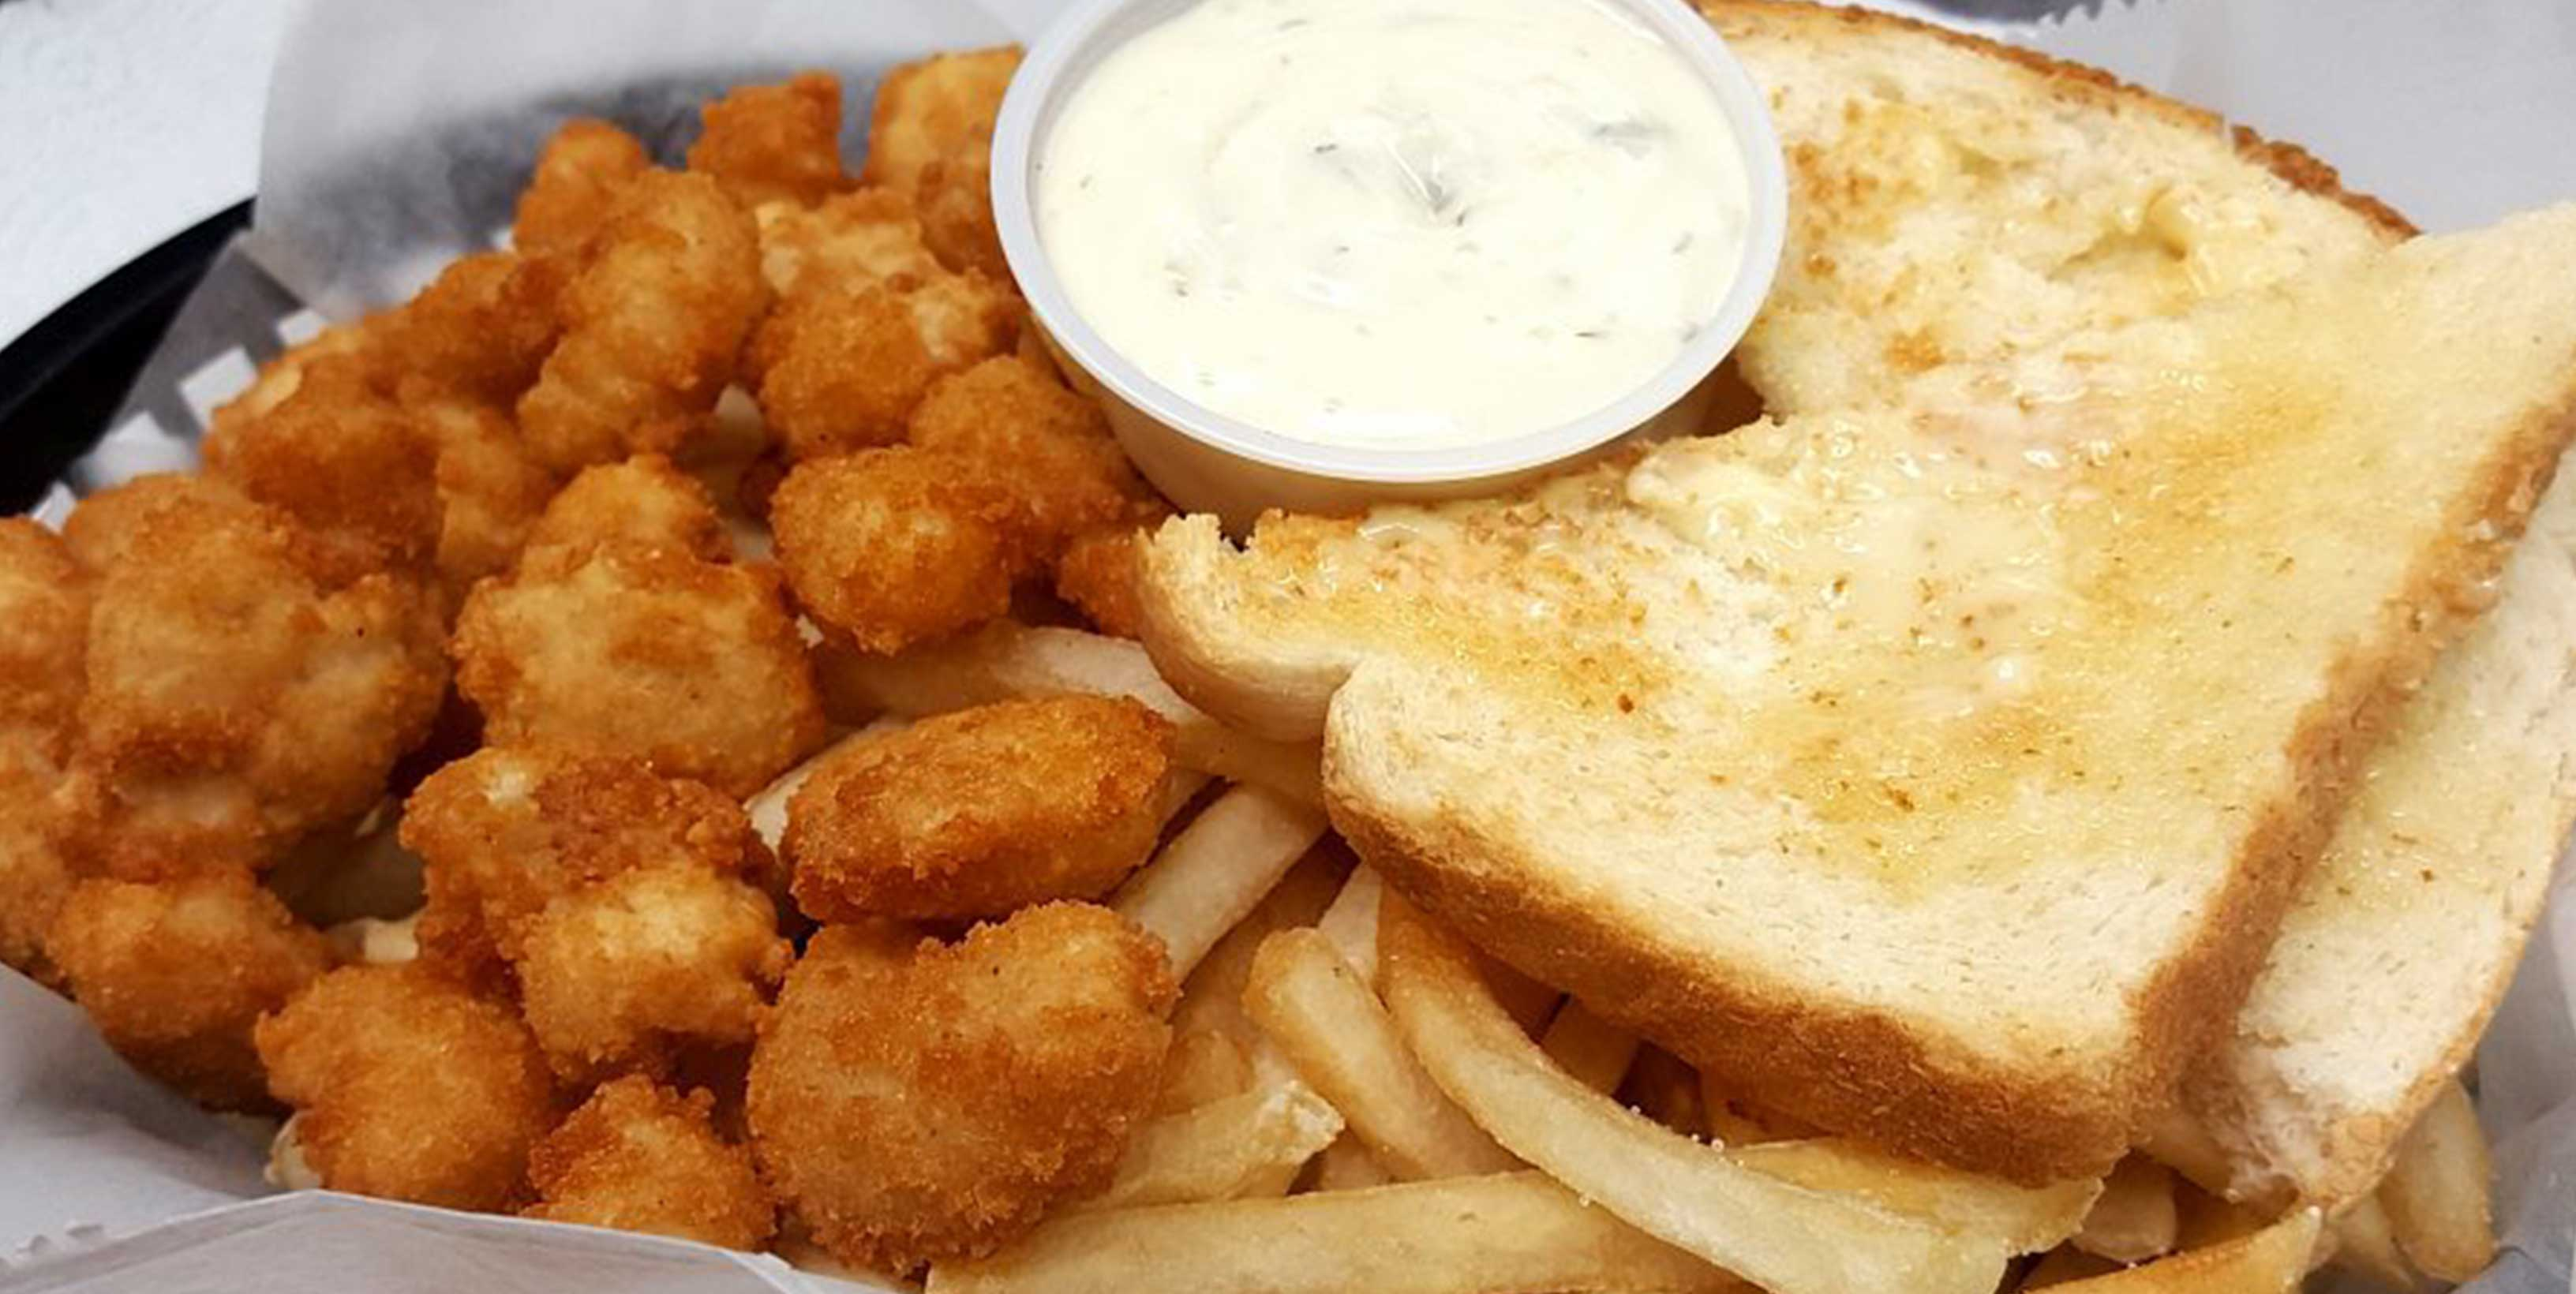 Basket of cheese curds, French fries, and toast from Main Gate Bar & Grill